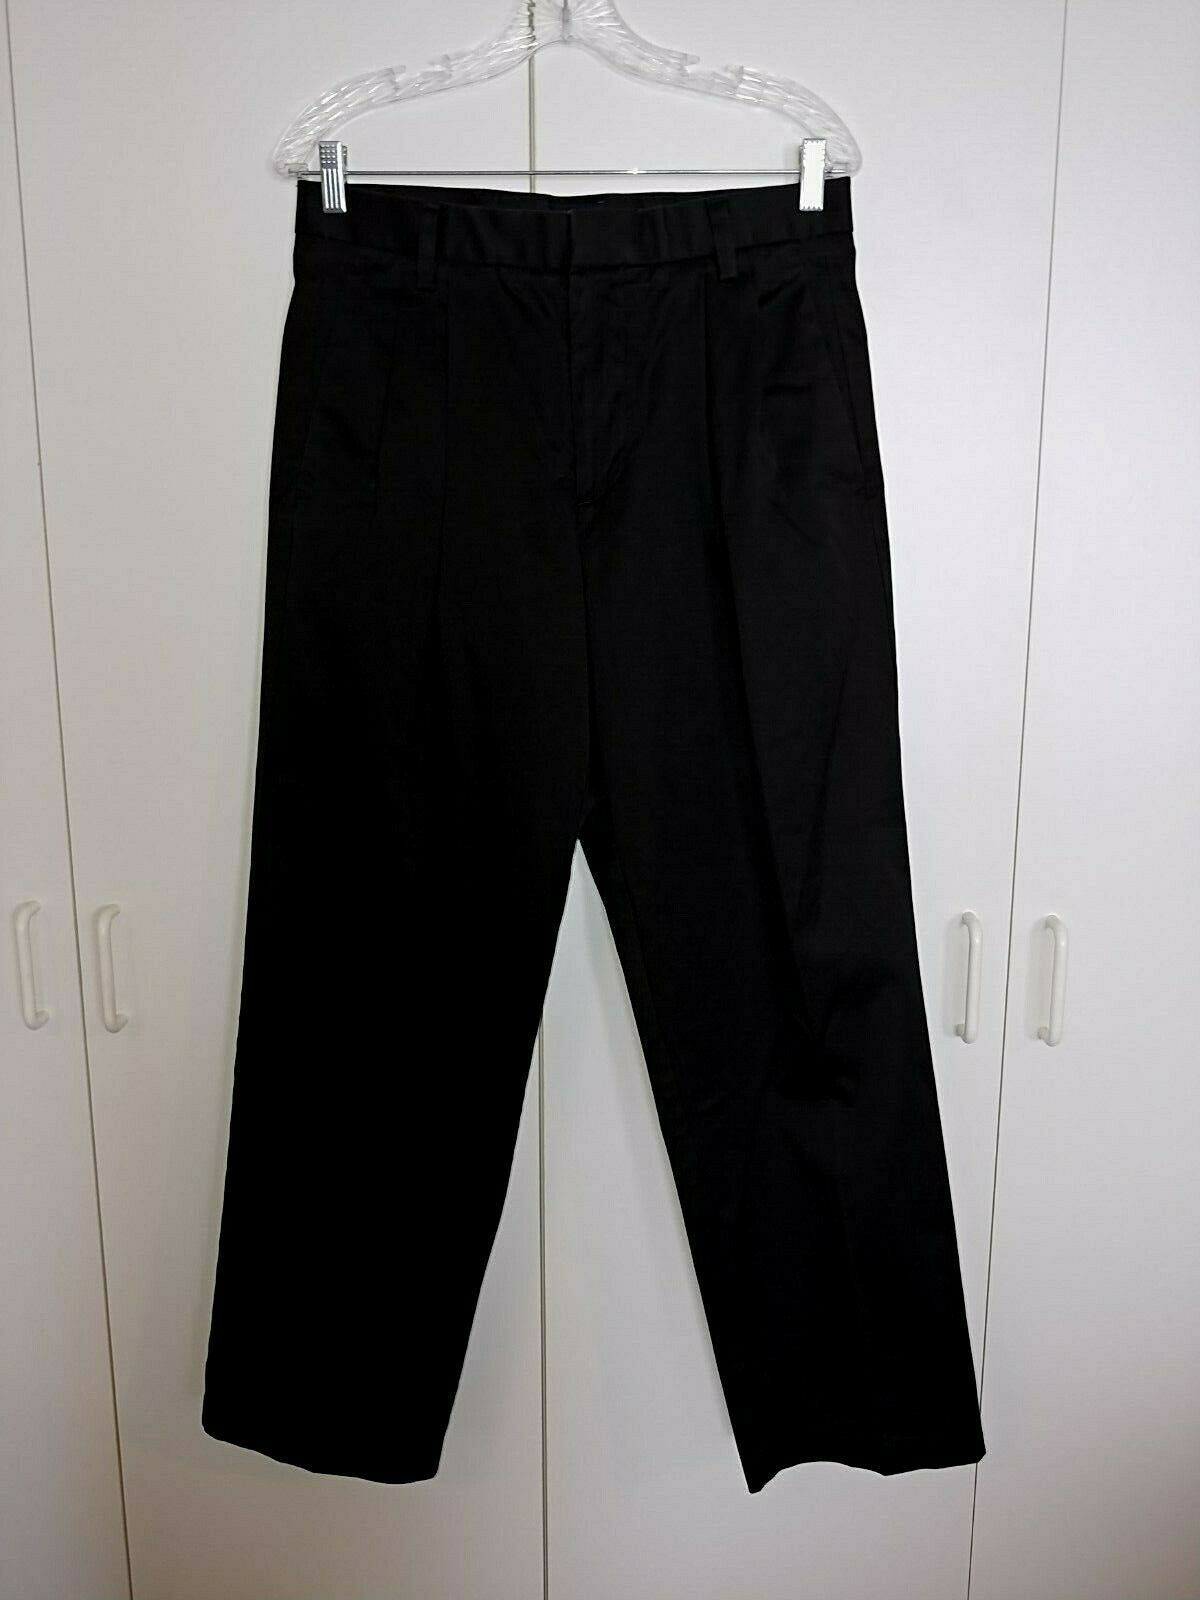 DOCKERS 03 CLASSIC FIT BLACK COTTON MENS PLEATED CASUAL PANTS-31X30-BARELY WORN